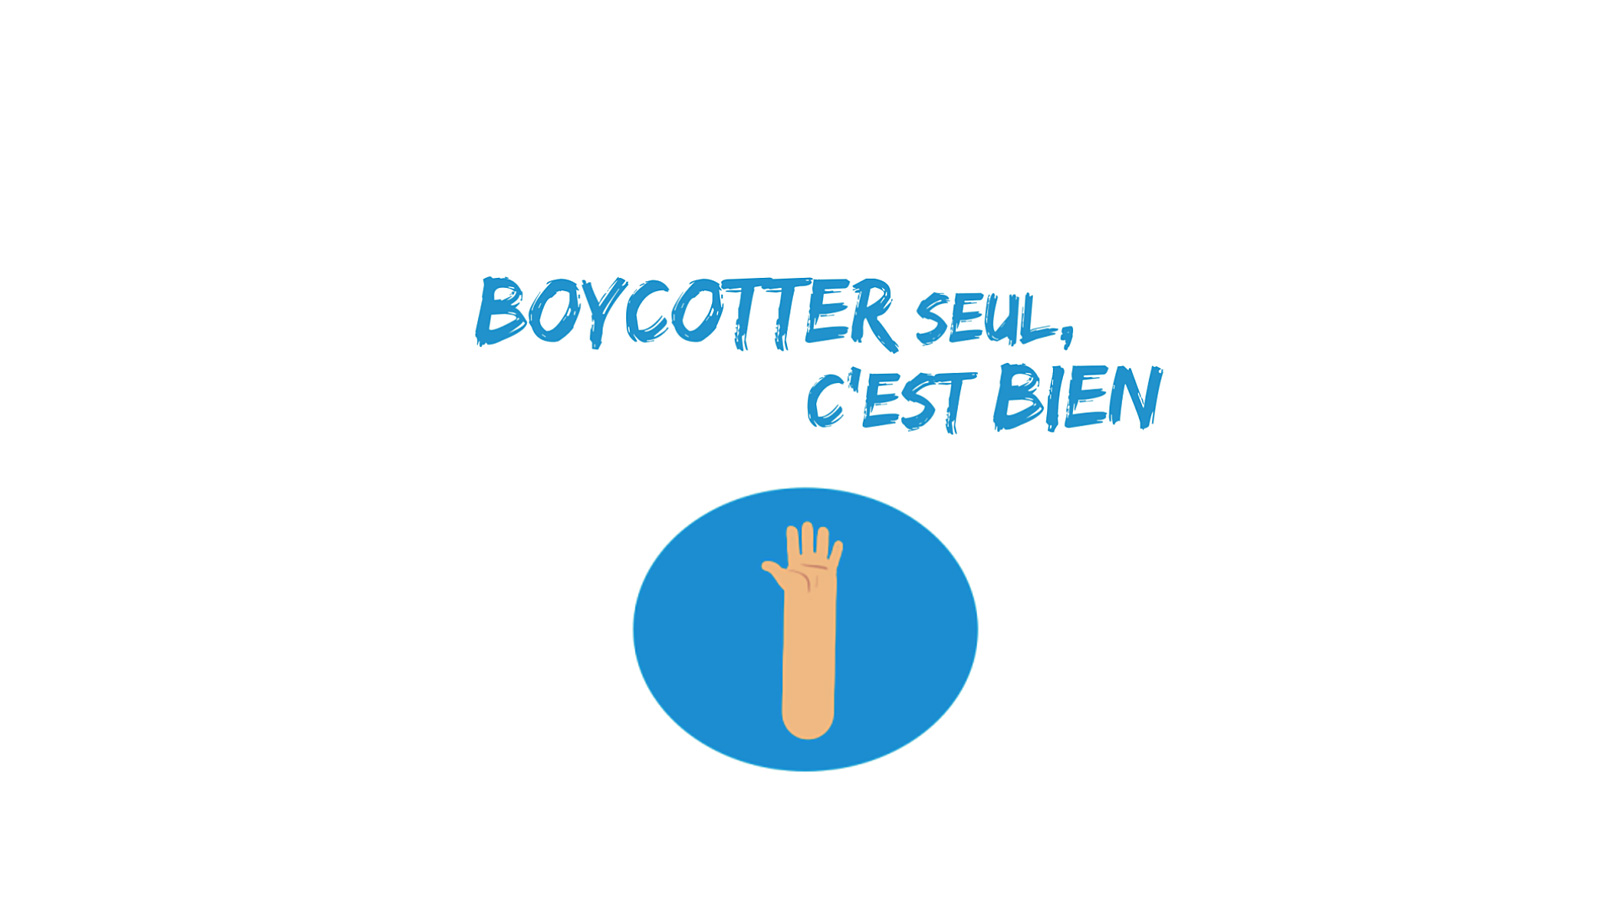 i-boycott.org - How does it work?